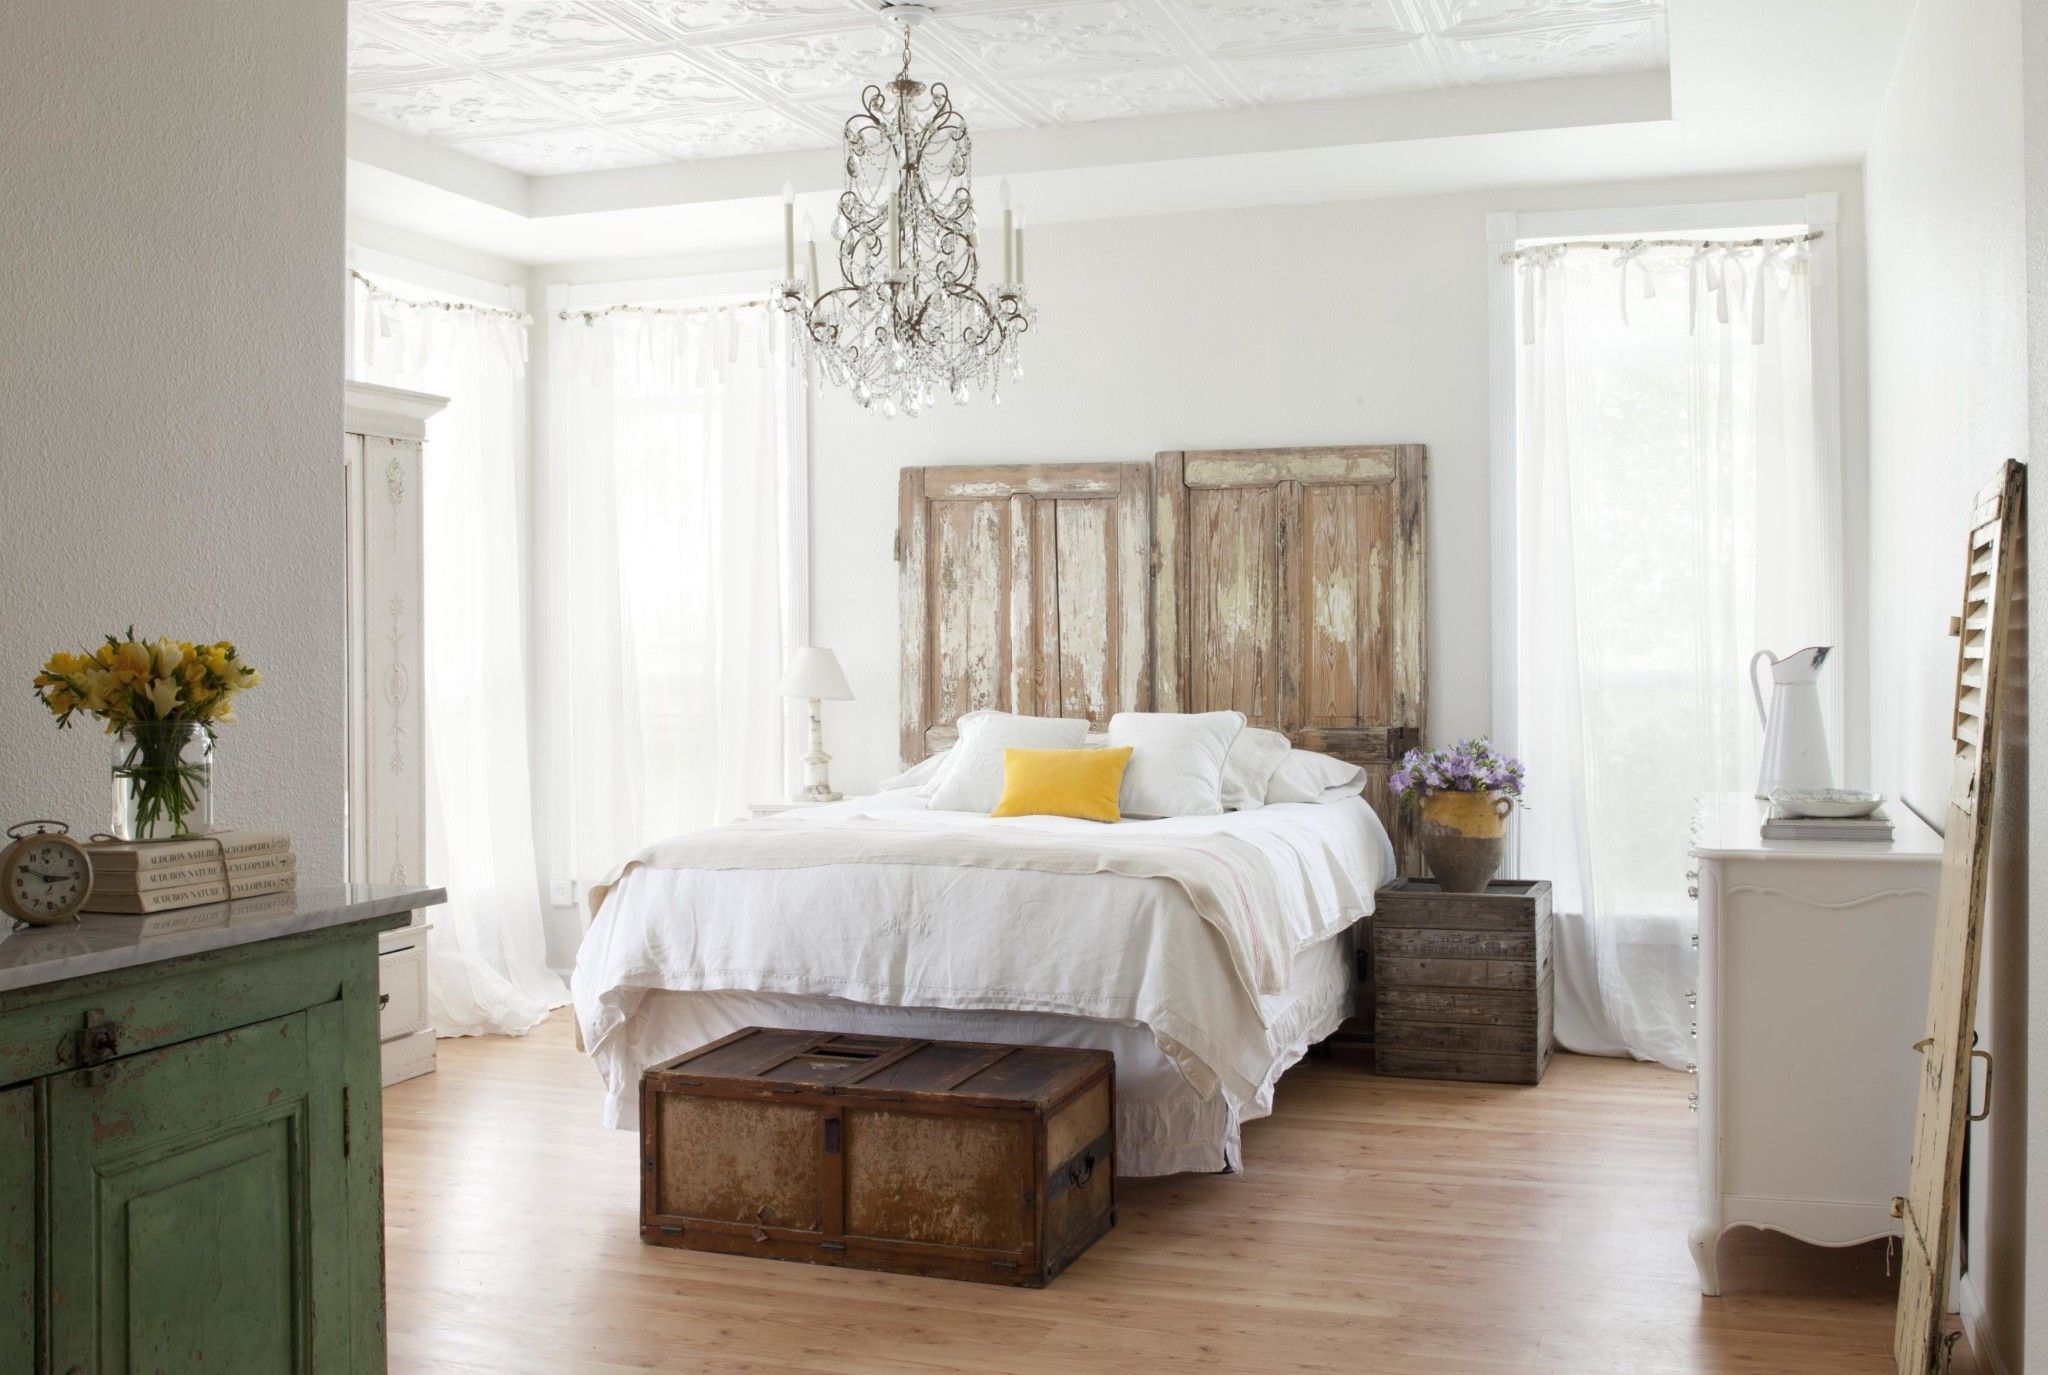 Vintage bedroom design is a competent combination